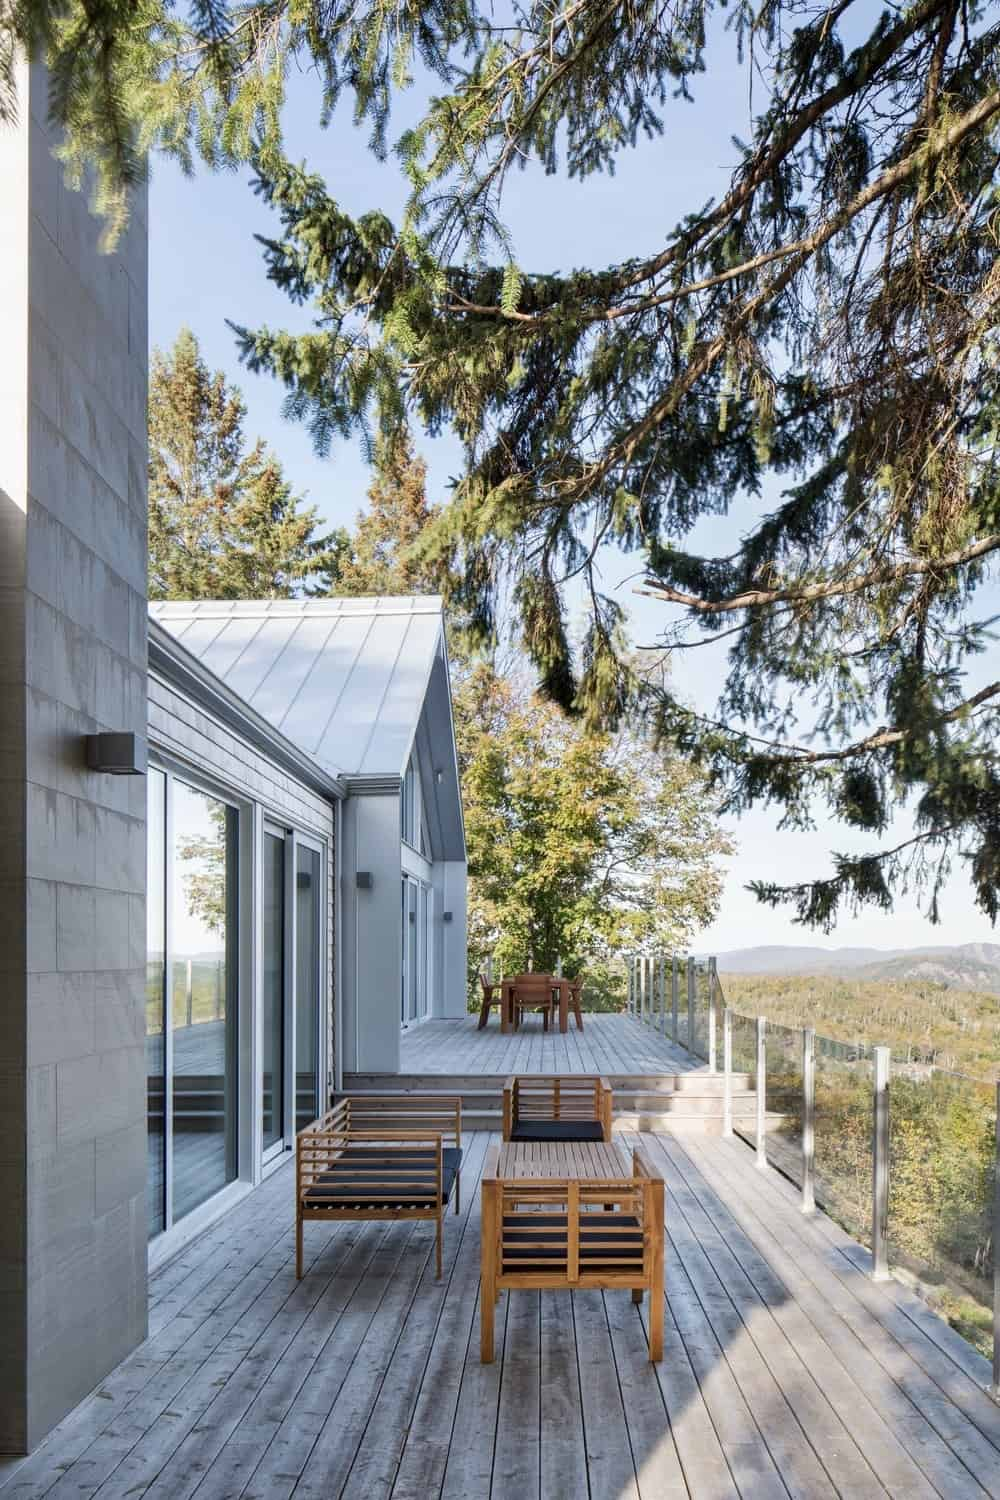 The outdoor features a deck providing space for a patio. Photo credit: Adrien Williams